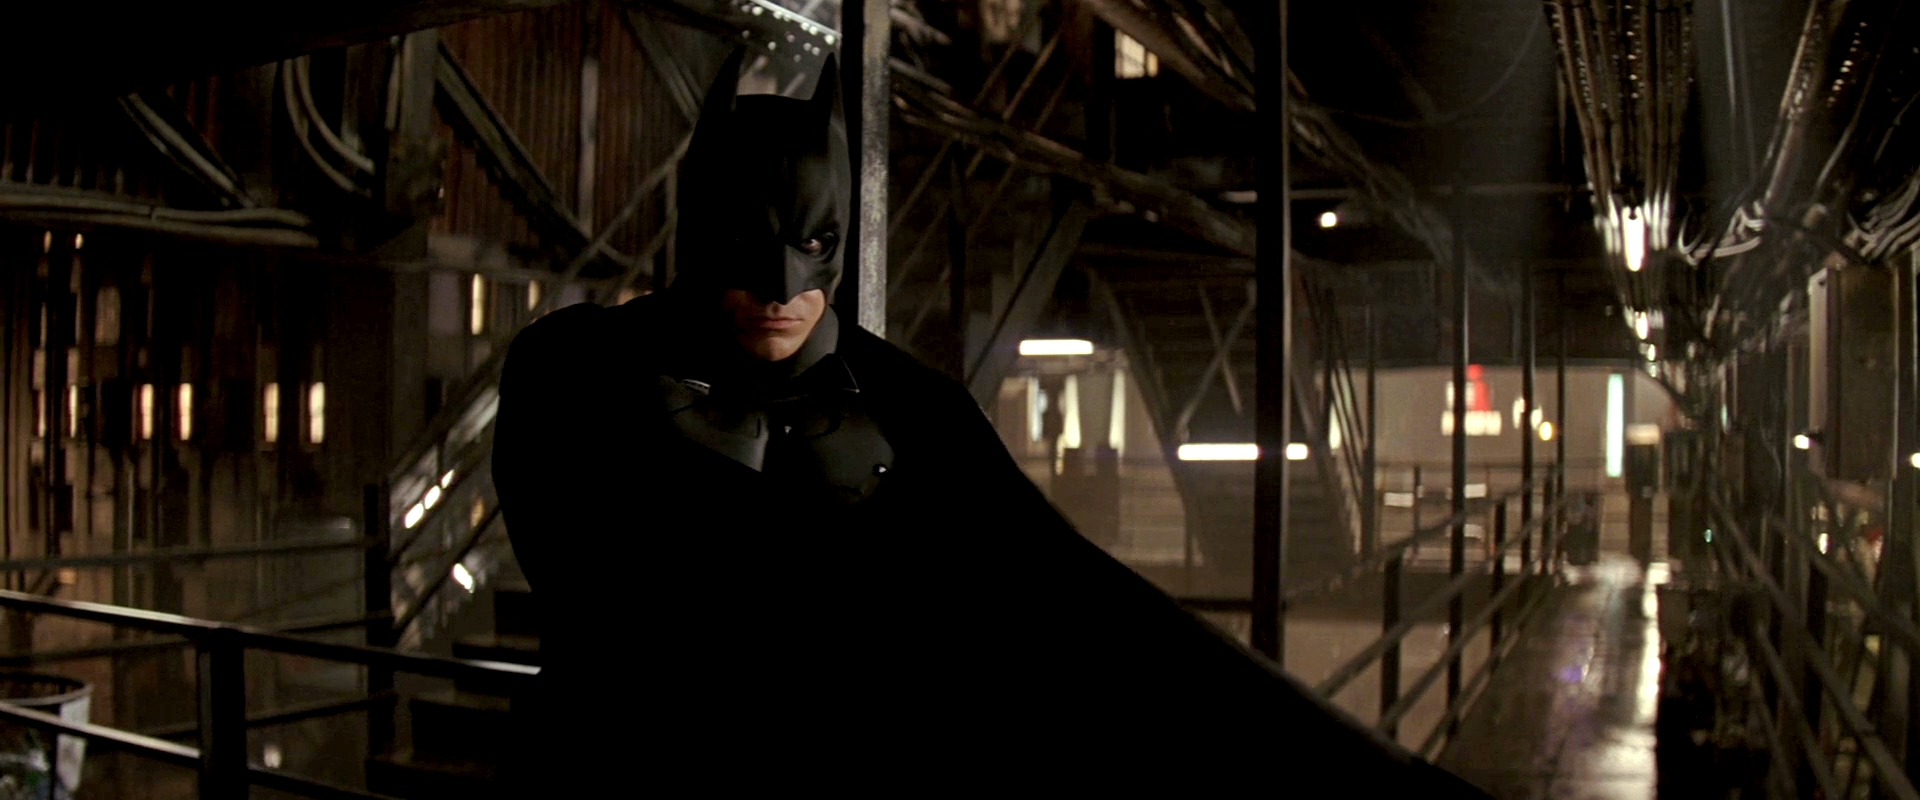 File:Batman Begins 2.jpg - Wikipedia Christian Bale